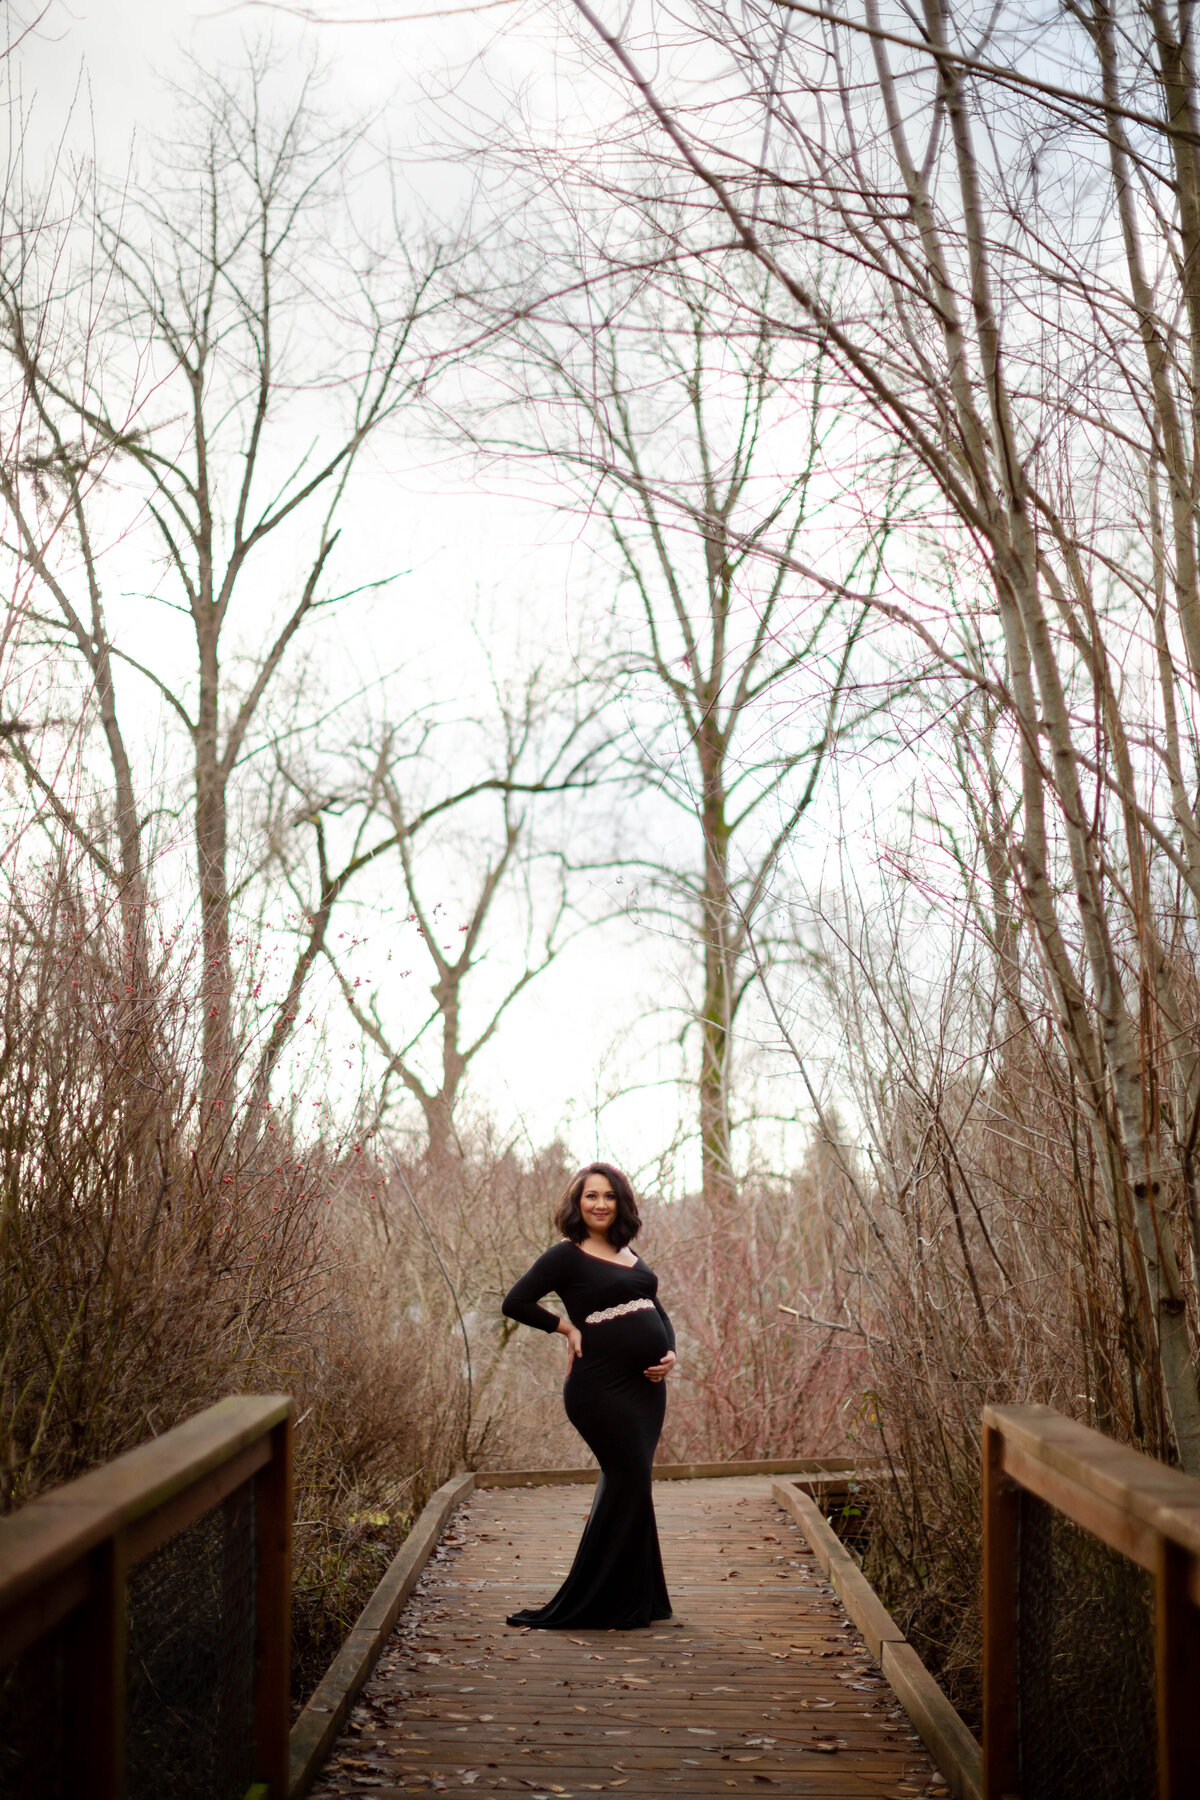 Mettler-Maternity-2020_Eva-Rieb-Photography_Color-80